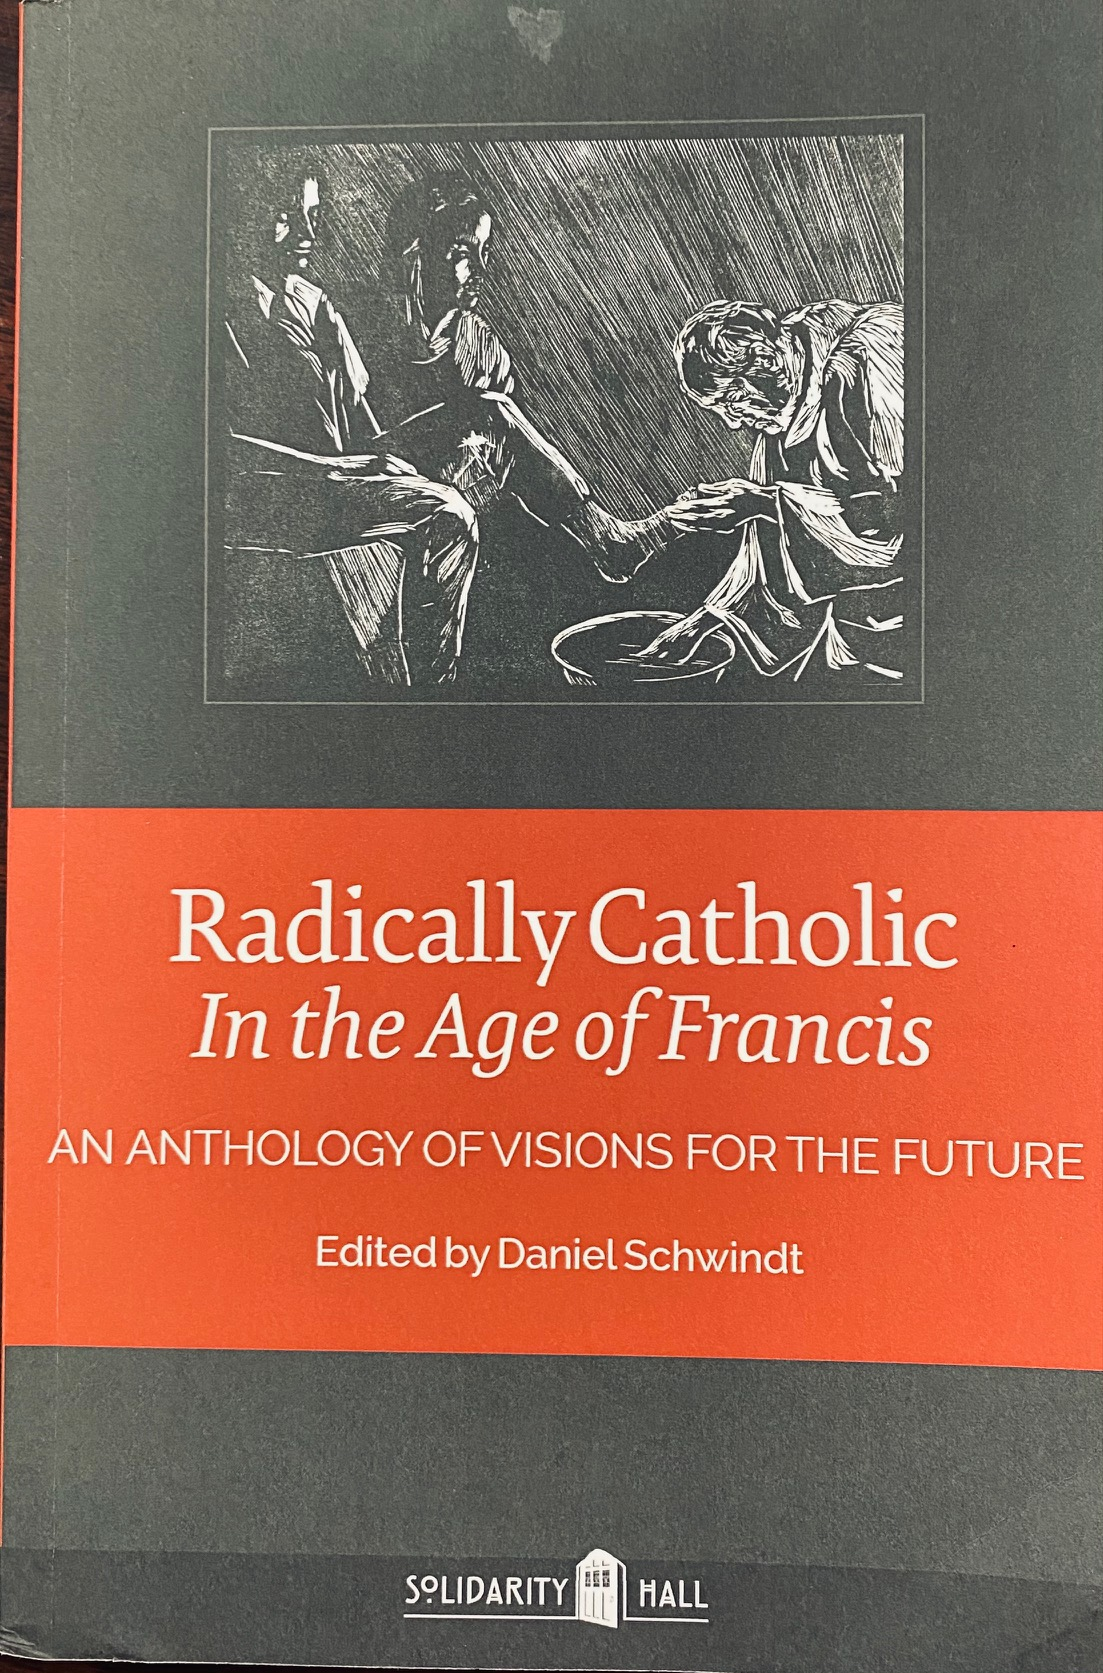 Image for Radically Catholic In the Age of Francis: An Anthology of Visions for the Future